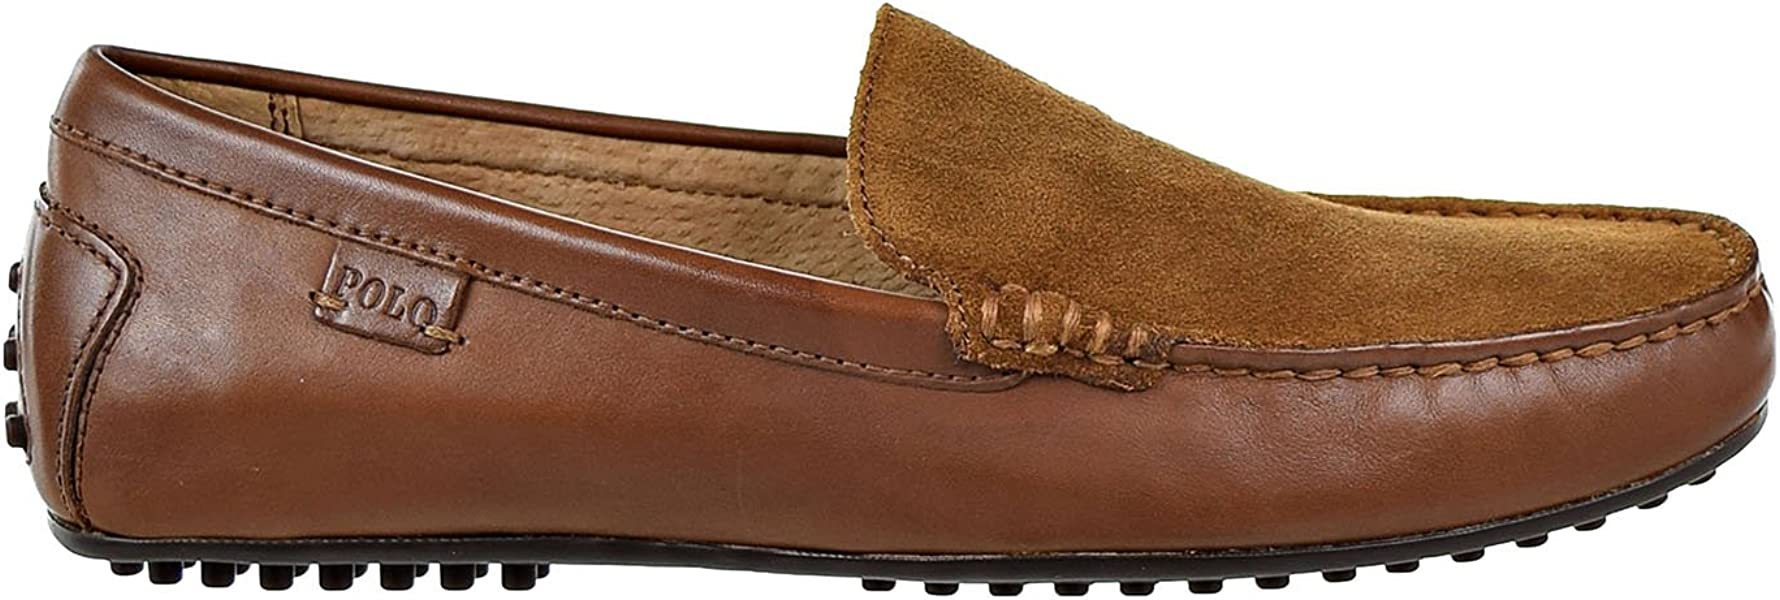 edb1af91ca6 Polo Ralph Lauren Woodley-SO-Driver Mens Loafers Brown 803641998-004 (7.5